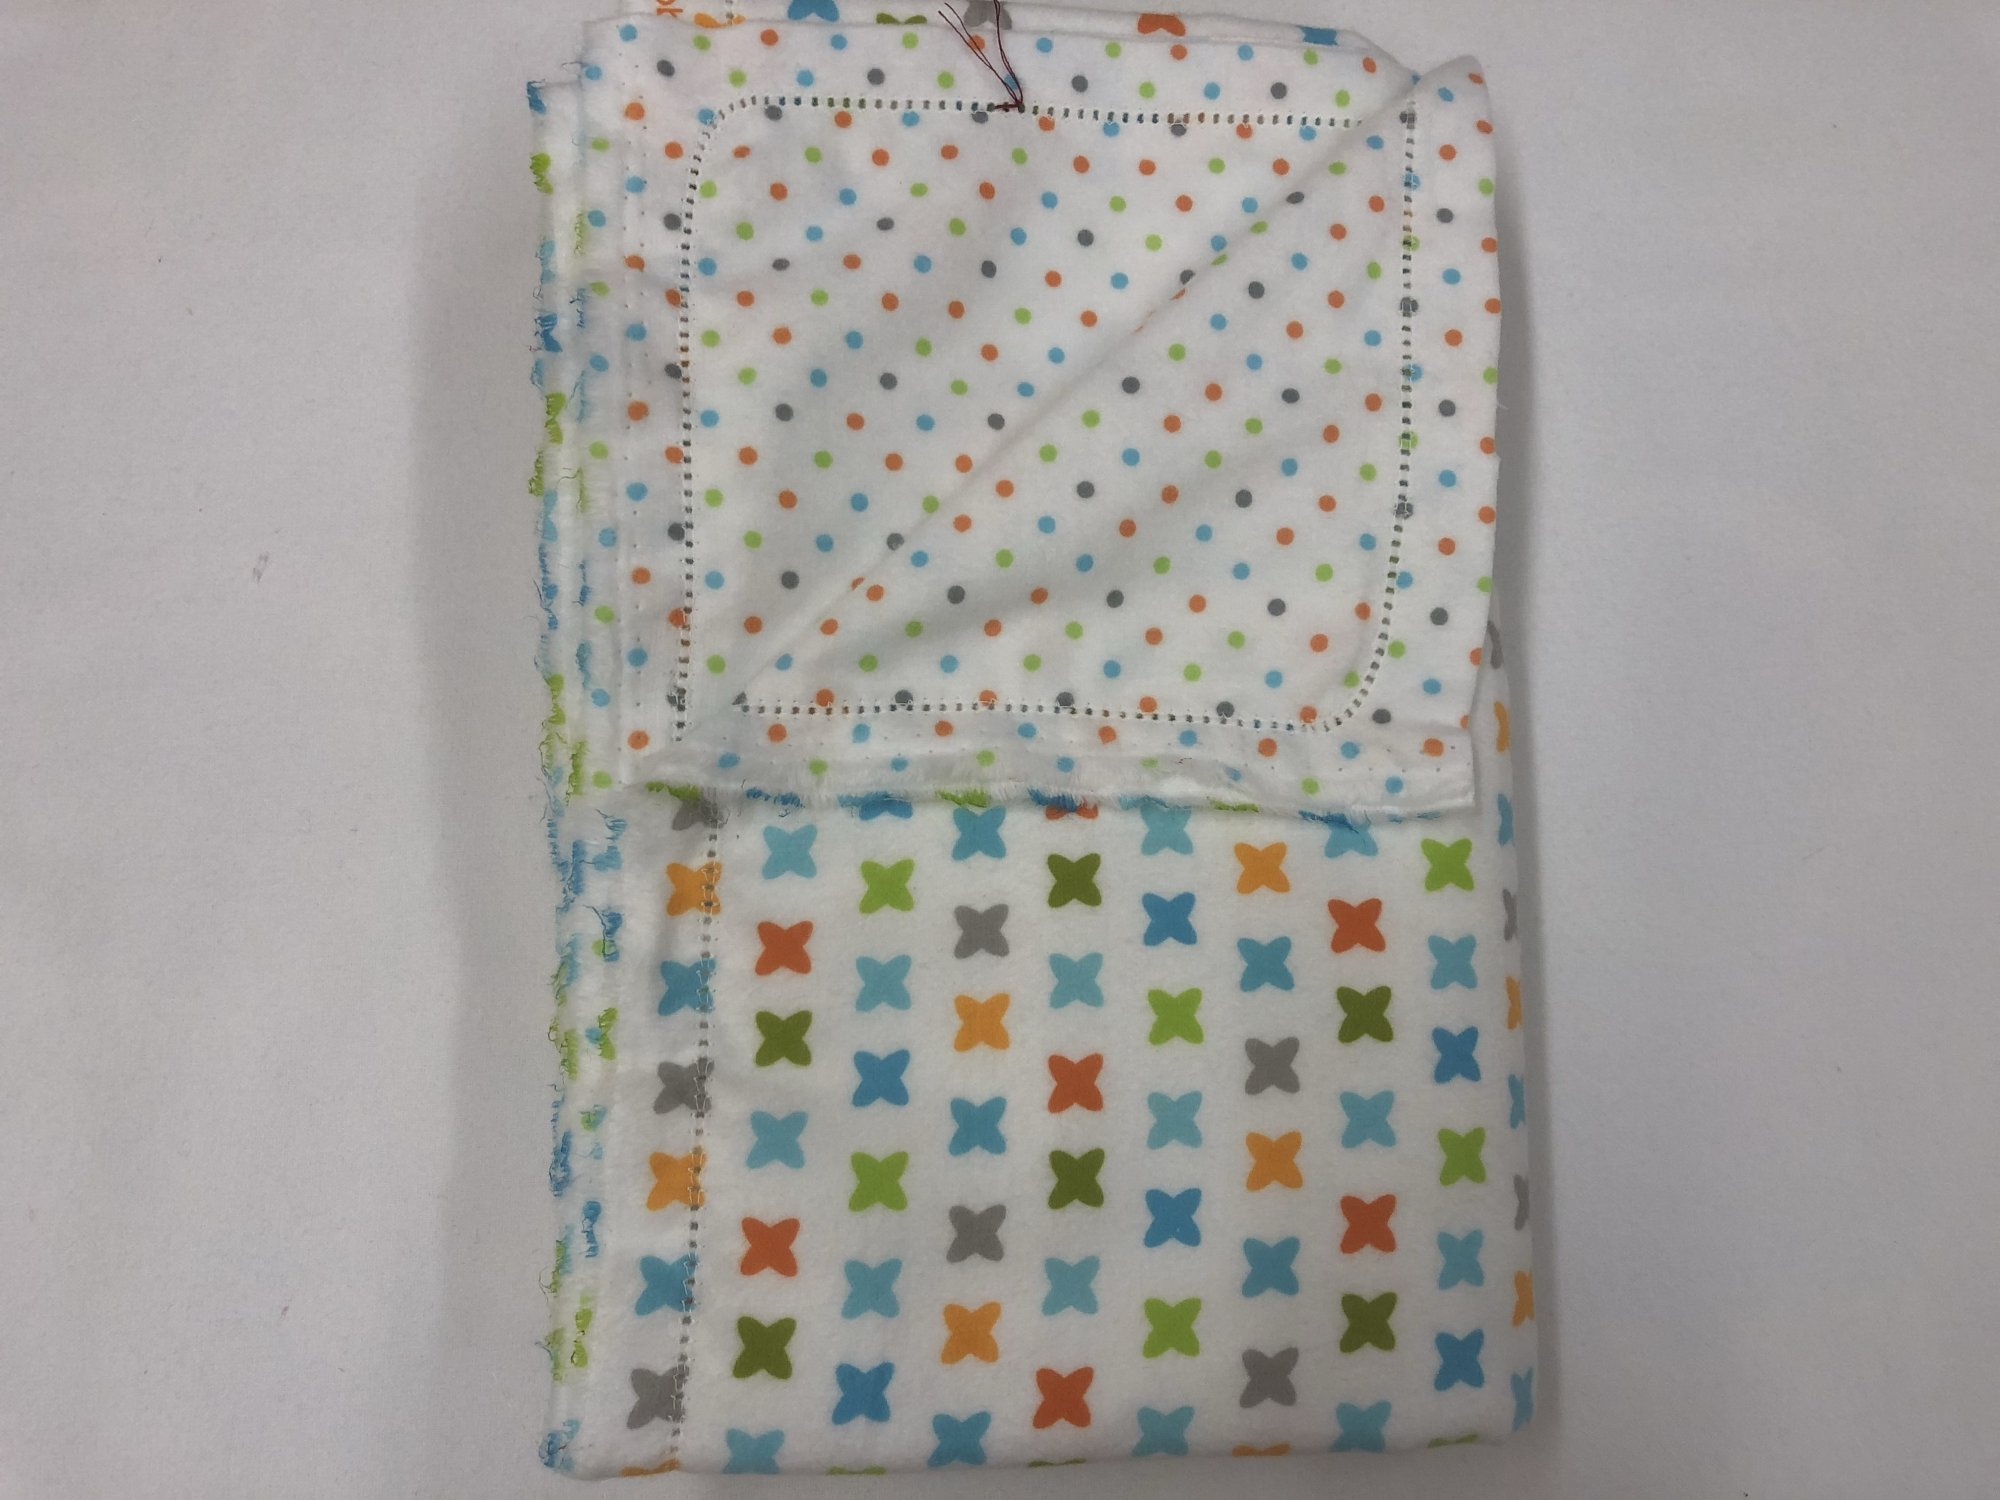 Multi-color 'X's on white background/multi-color dots on white fabric